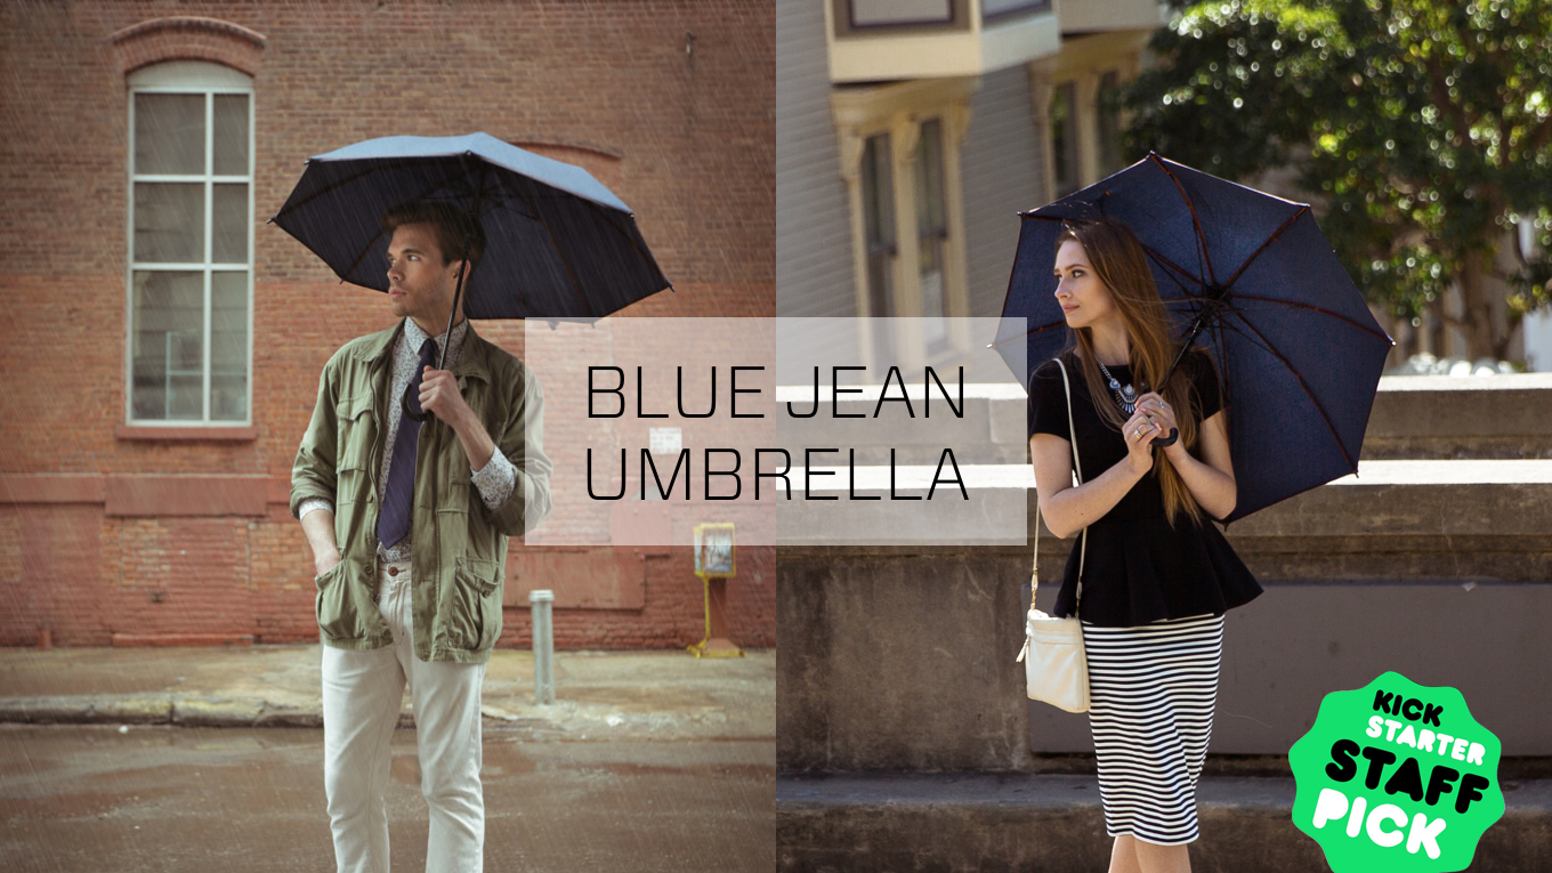 The first personal umbrella made from high-tech Sunbrella™ fabric to block both rain and harmful UV rays